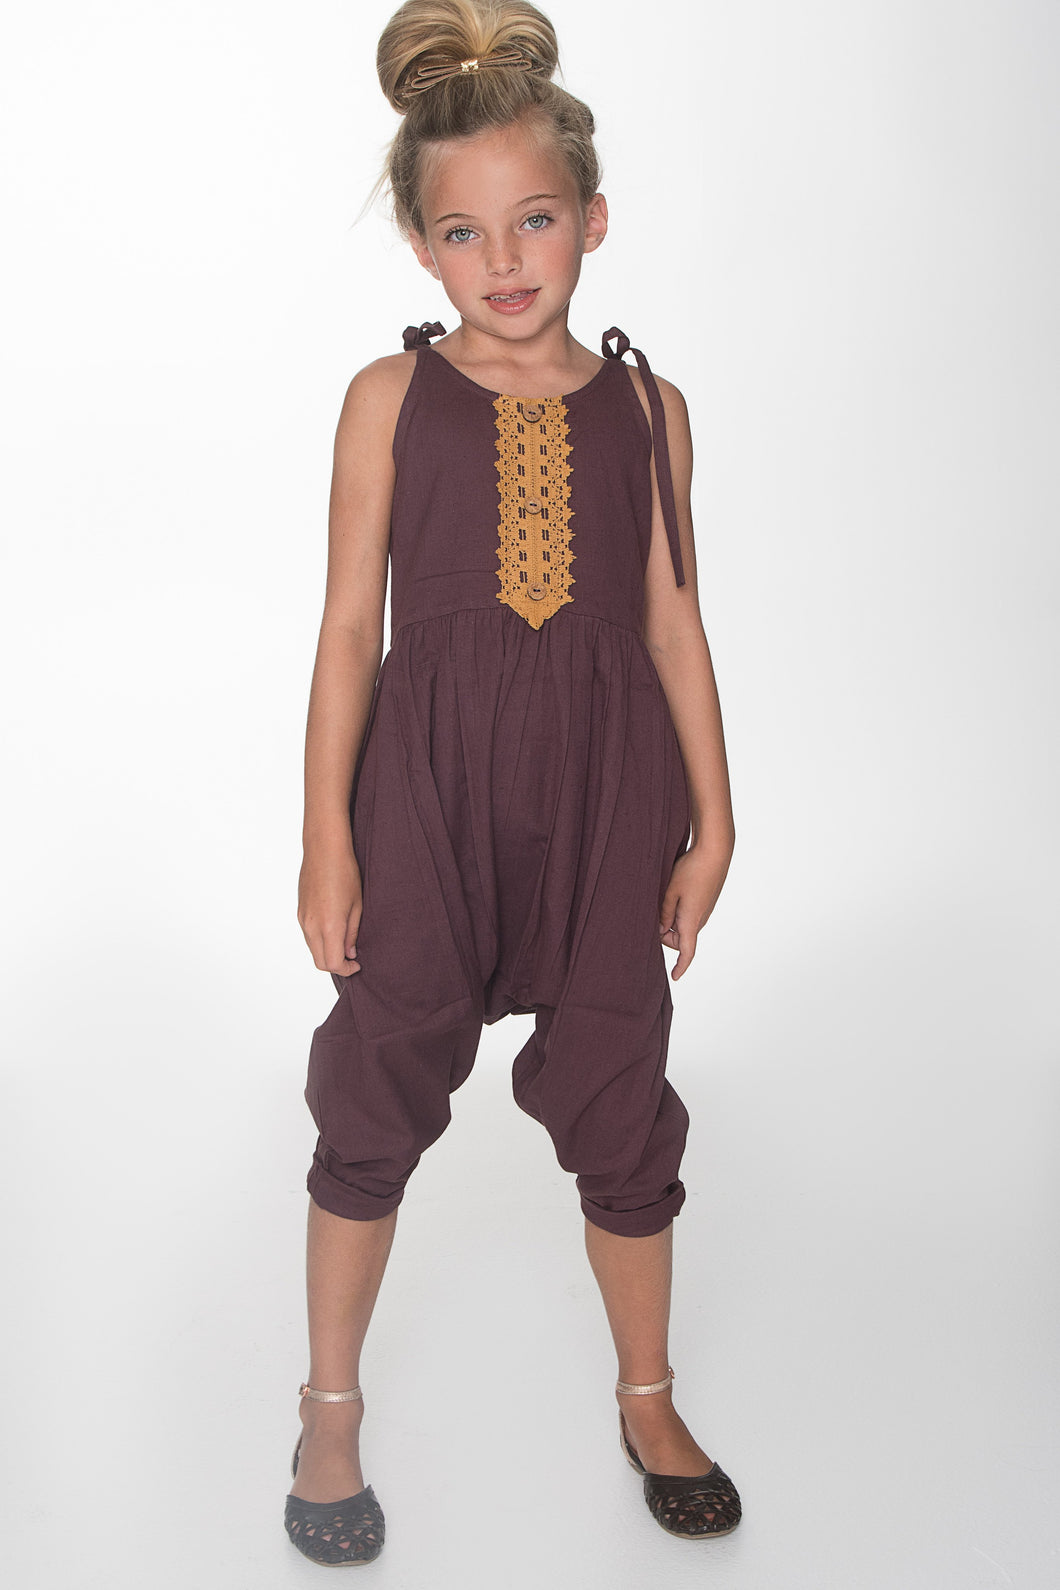 Burgundy Jumpsuit with Lace Detail - Kids Clothing, Dress - Girls Dress, Yo Baby Online - Yo Baby